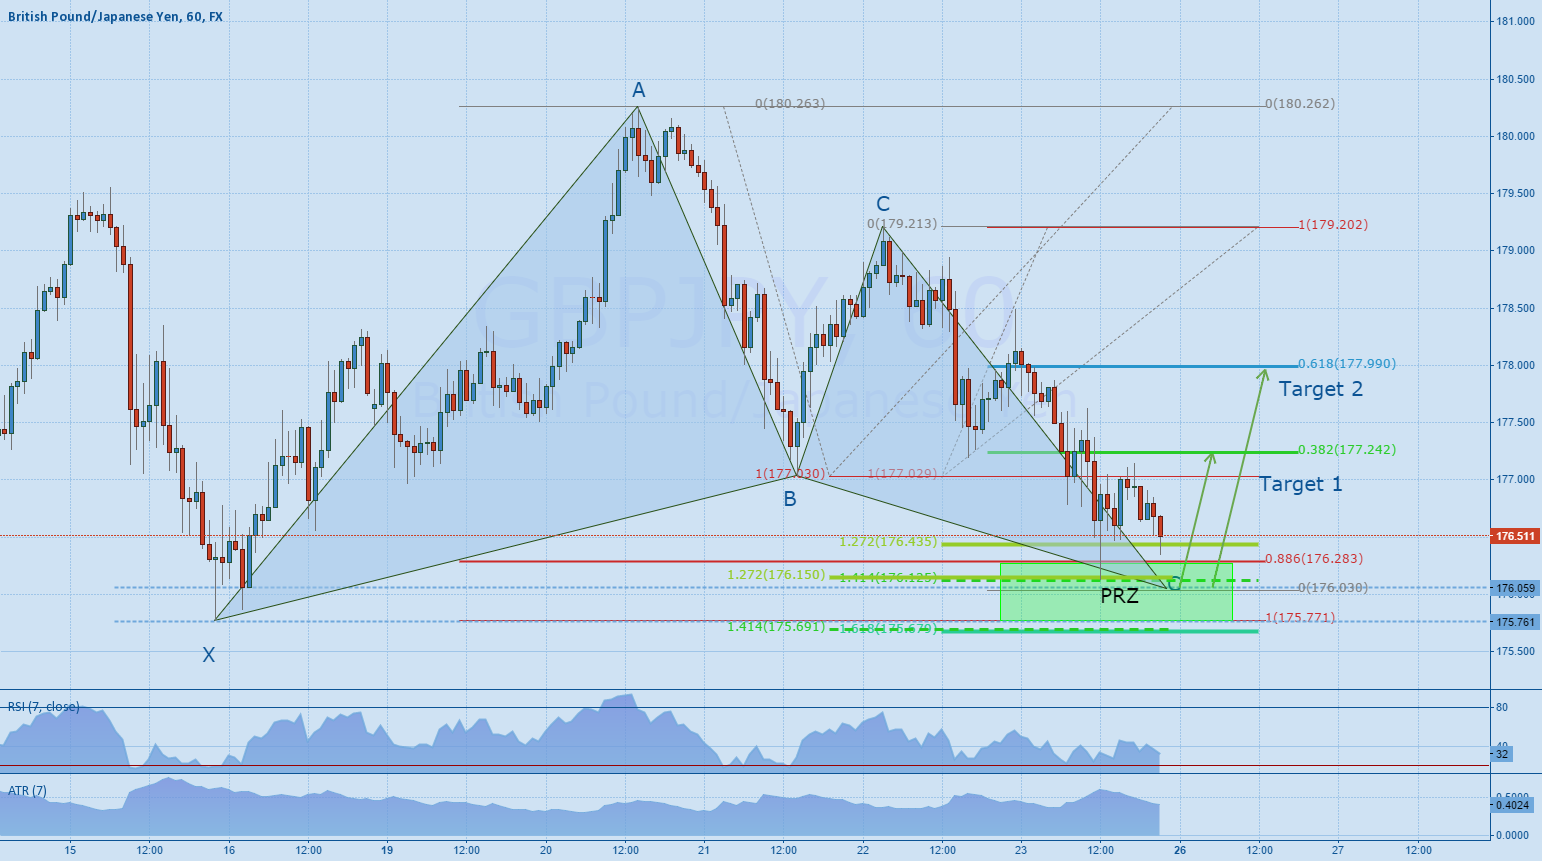 GBPJPY 60min - Gartley Pattern completion